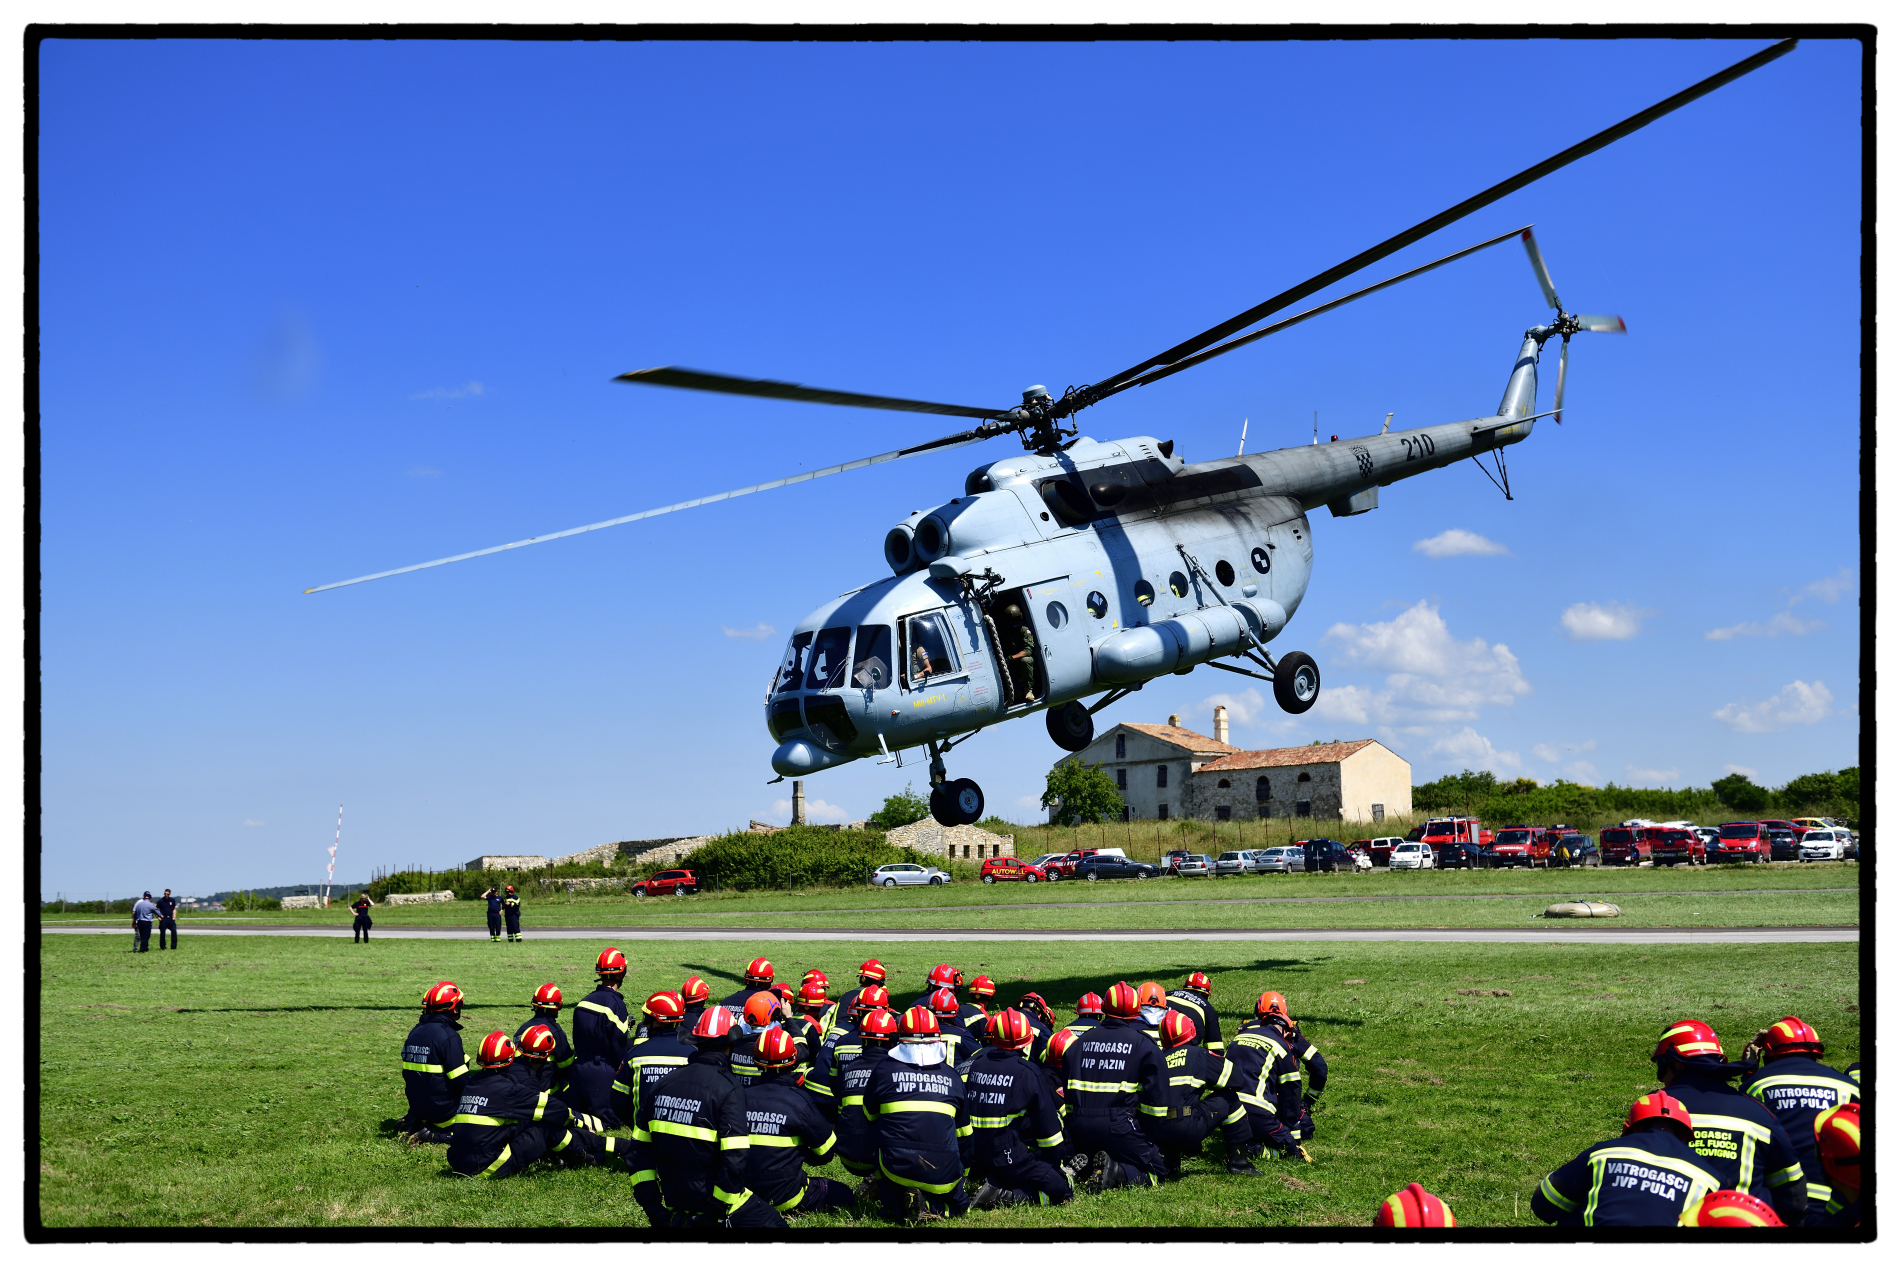 Image - Training with the Croatian's army helicopter